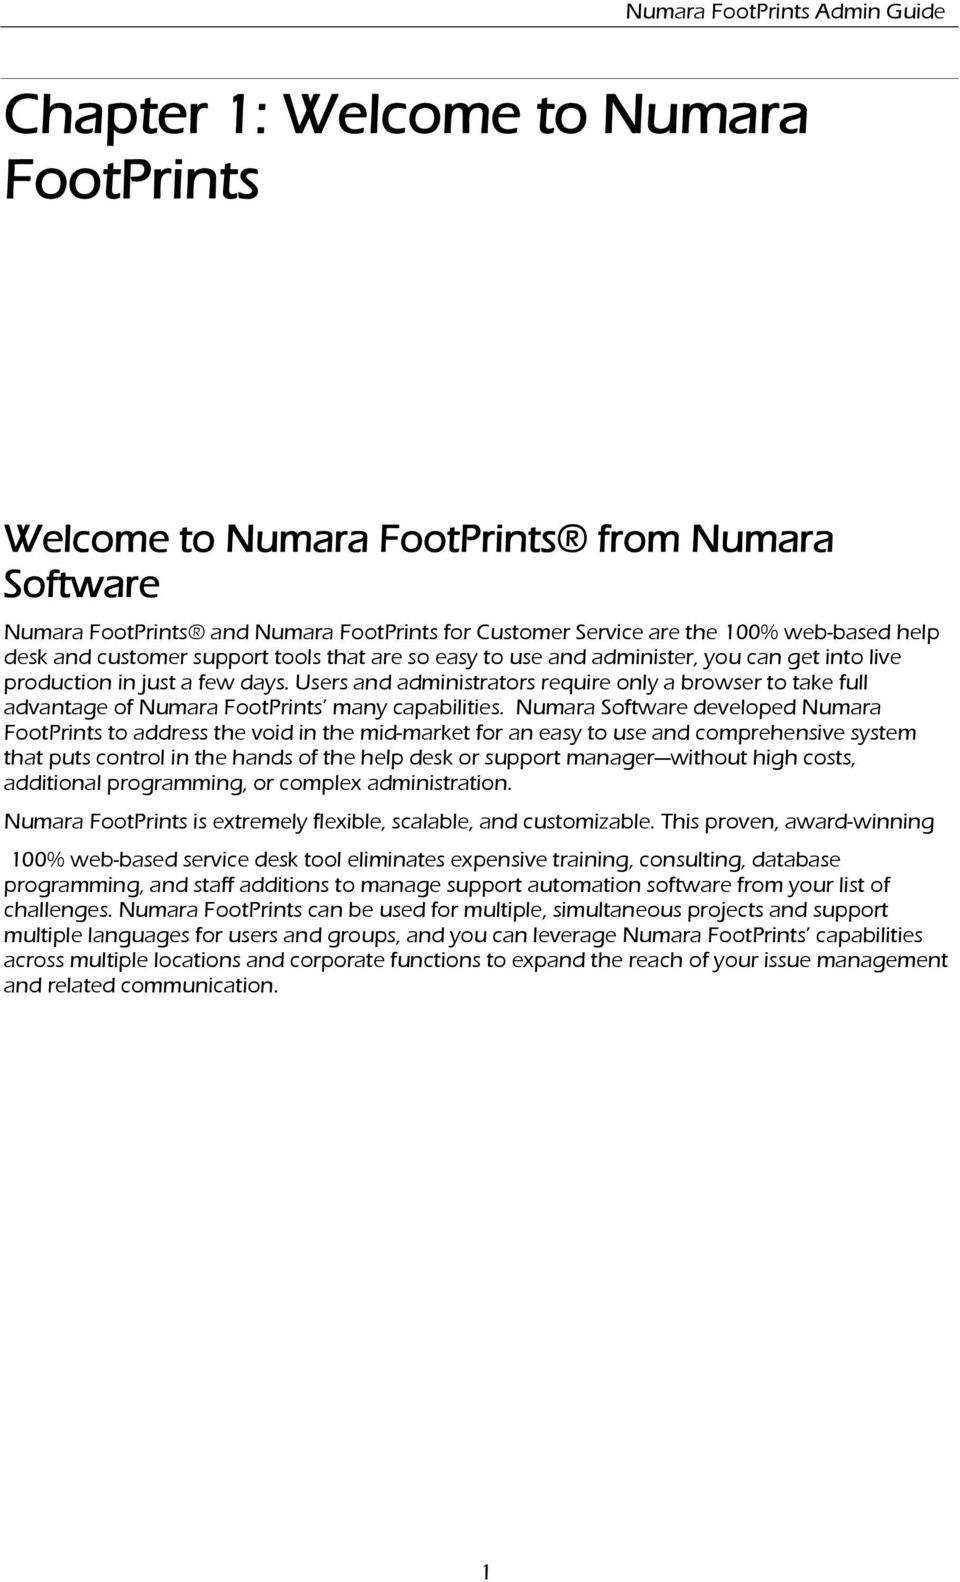 Numara Sftware develped Numara FtPrints t address the vid in the mid-market fr an easy t use and cmprehensive system that puts cntrl in the hands f the help desk r supprt manager withut high csts,